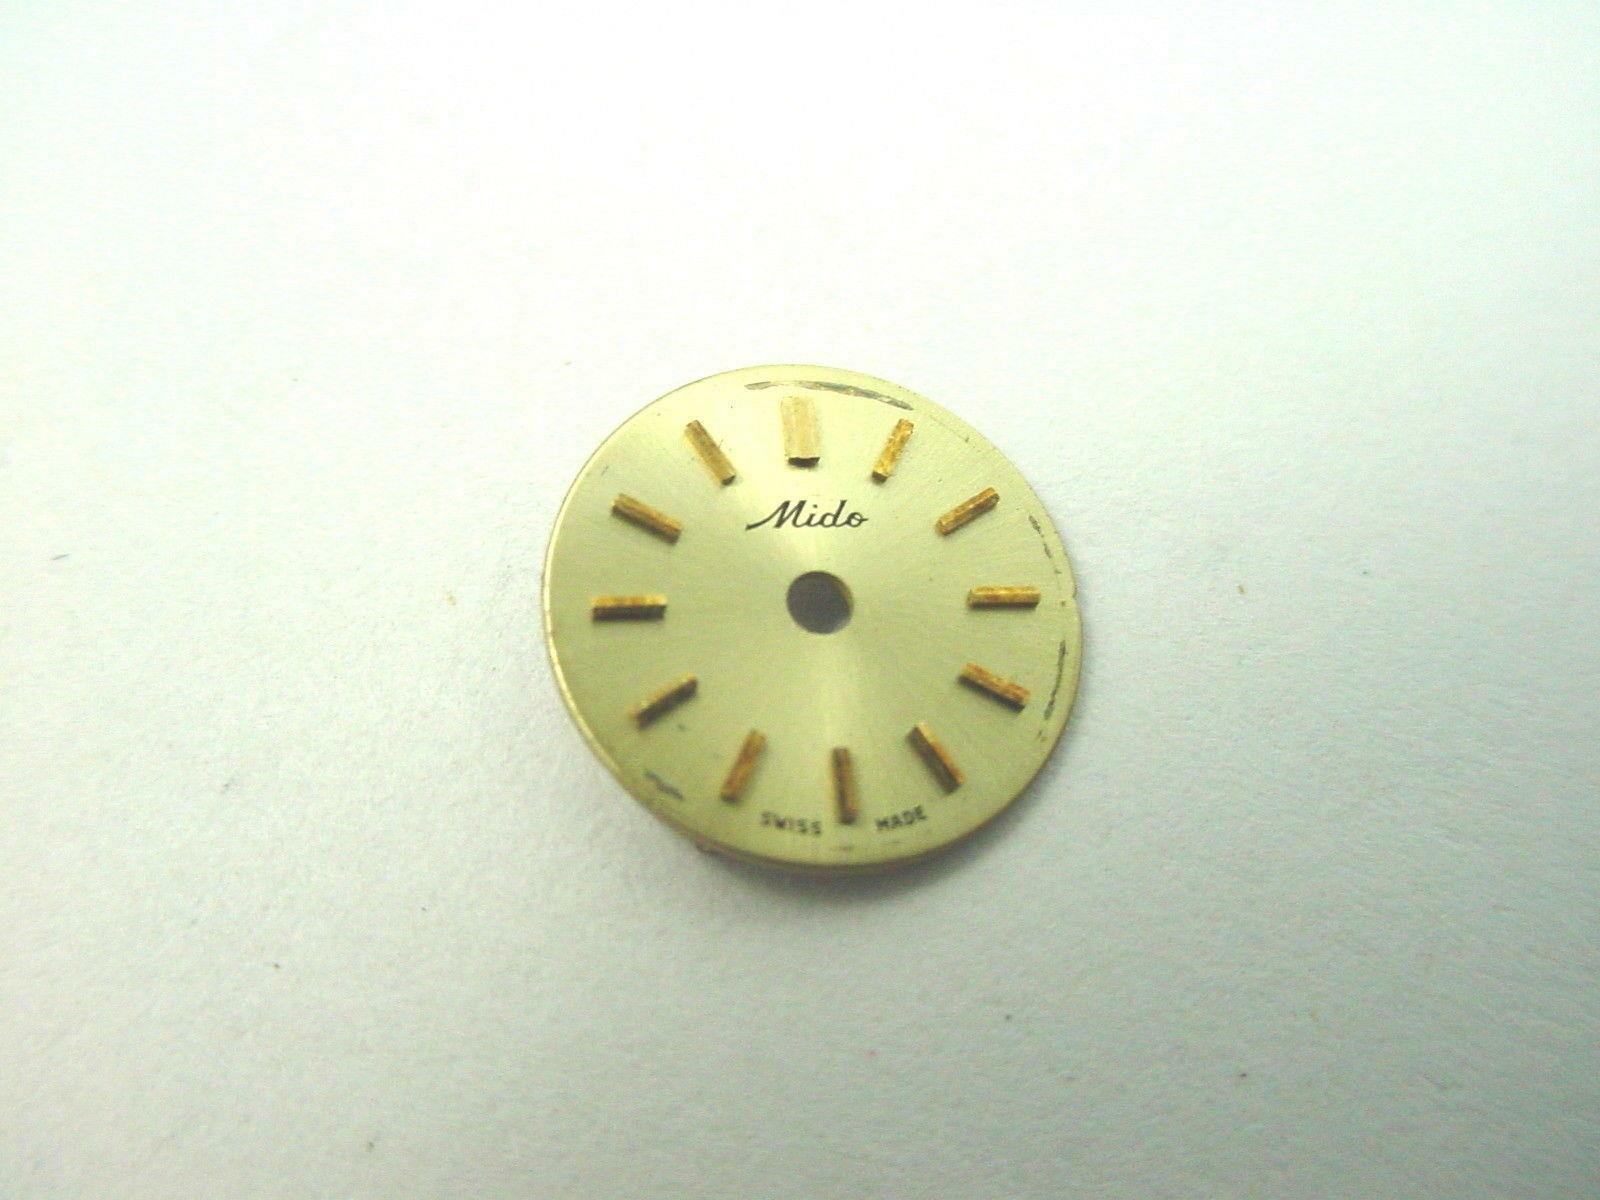 Vintage Mido Watch Dial Gold with Gold Stick Markers 11.49mm New Old Stock